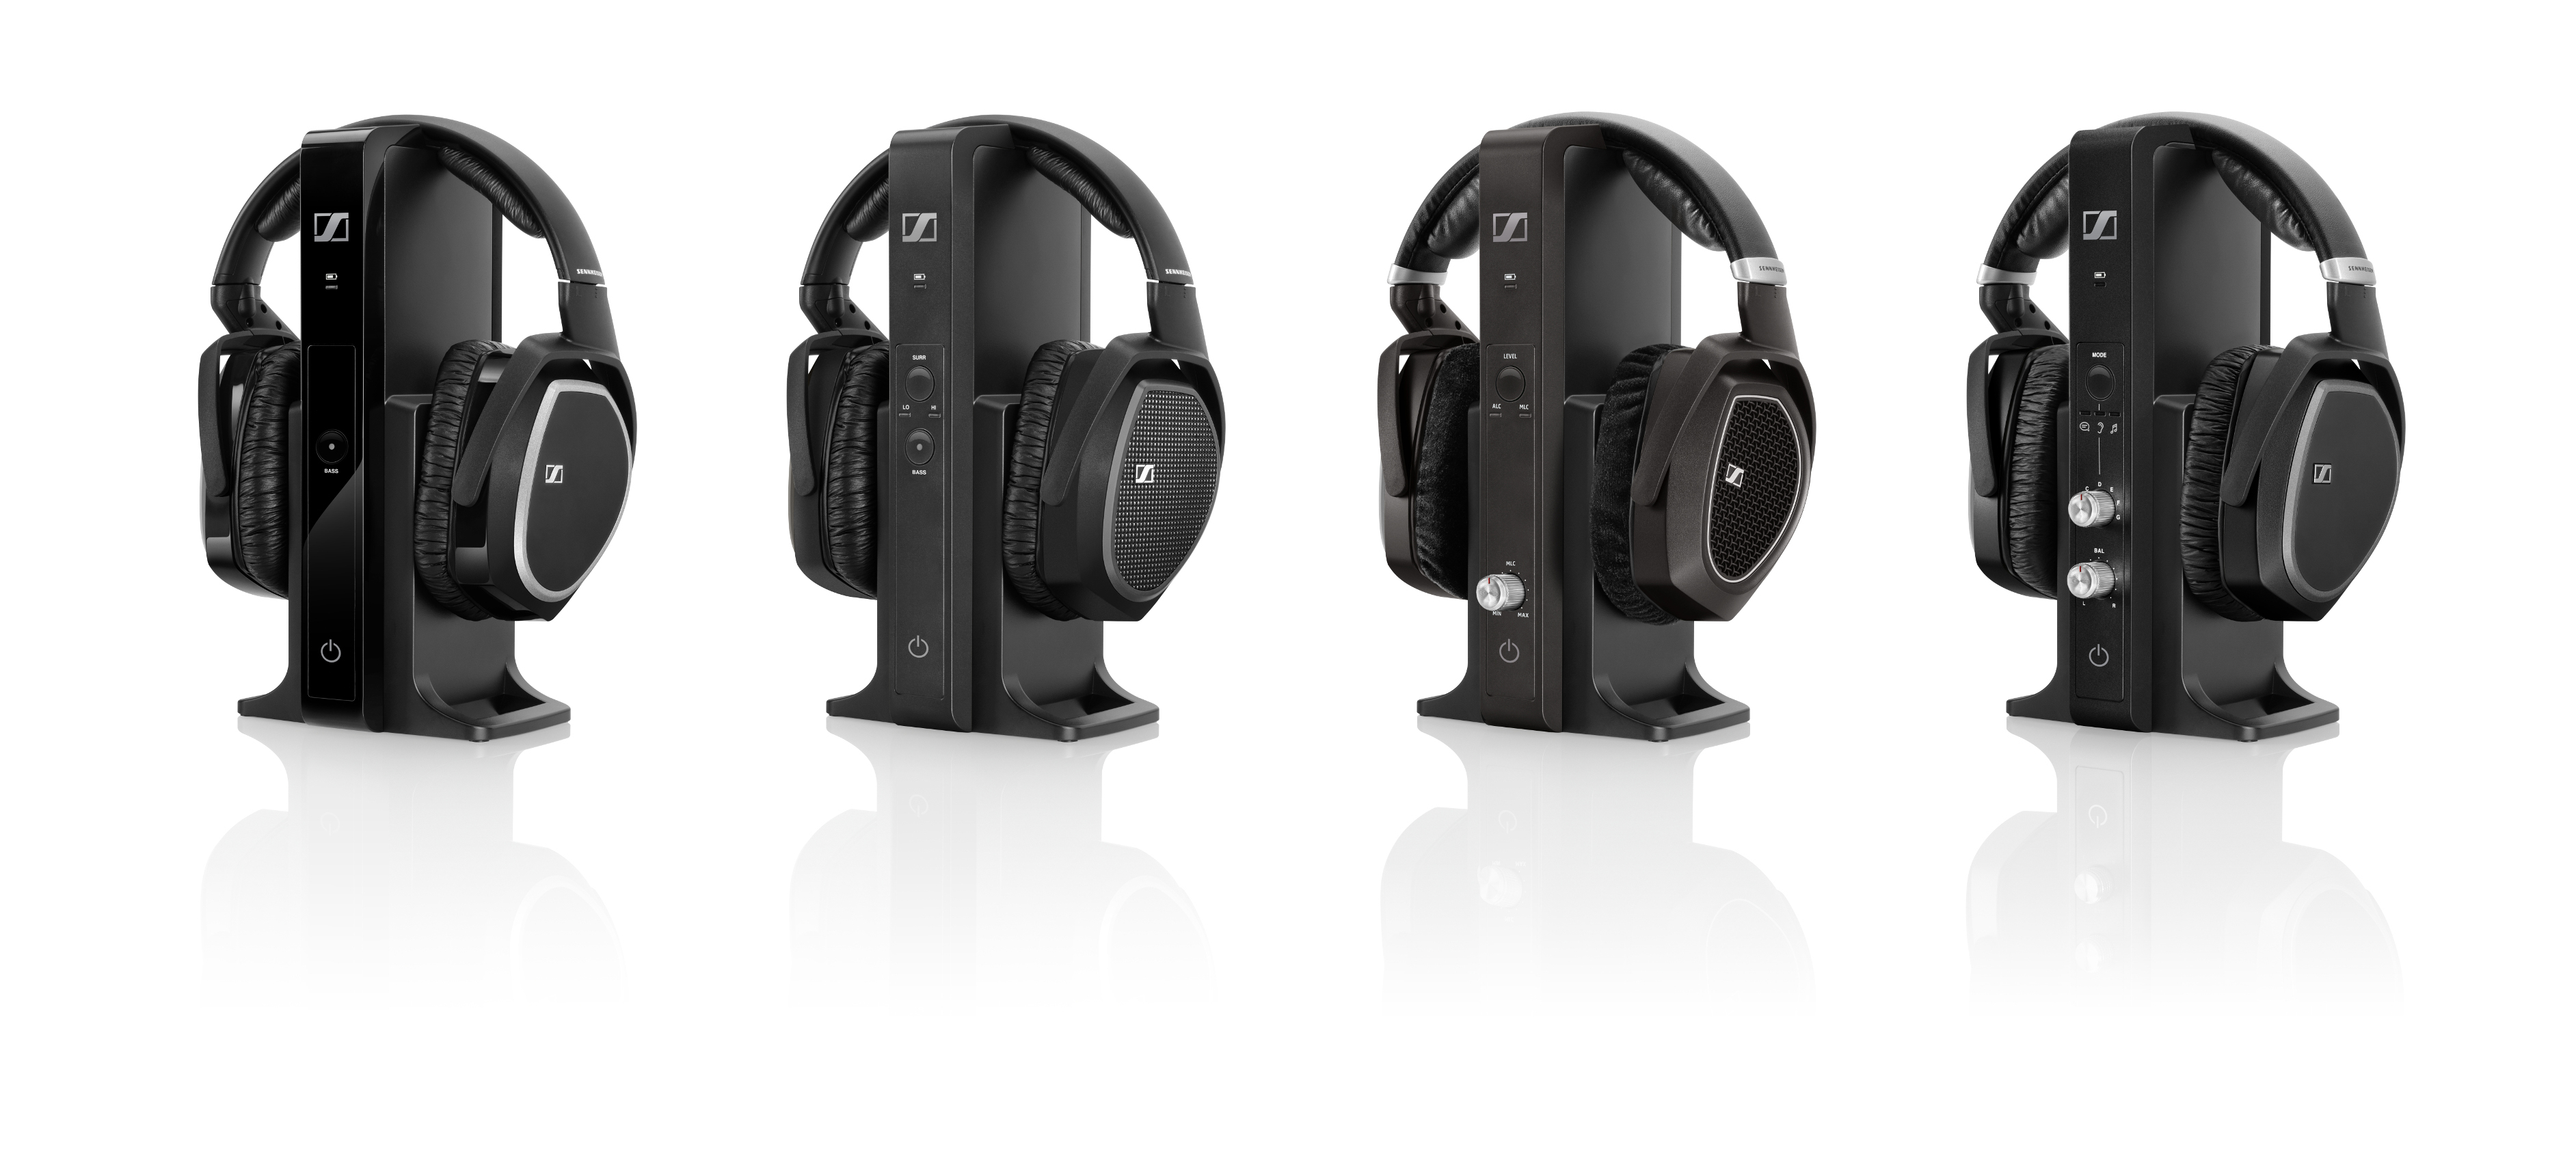 29d4f986200 Your sound, liberated: Sennheiser's new RS line defines a new standard in digital  wireless home audio